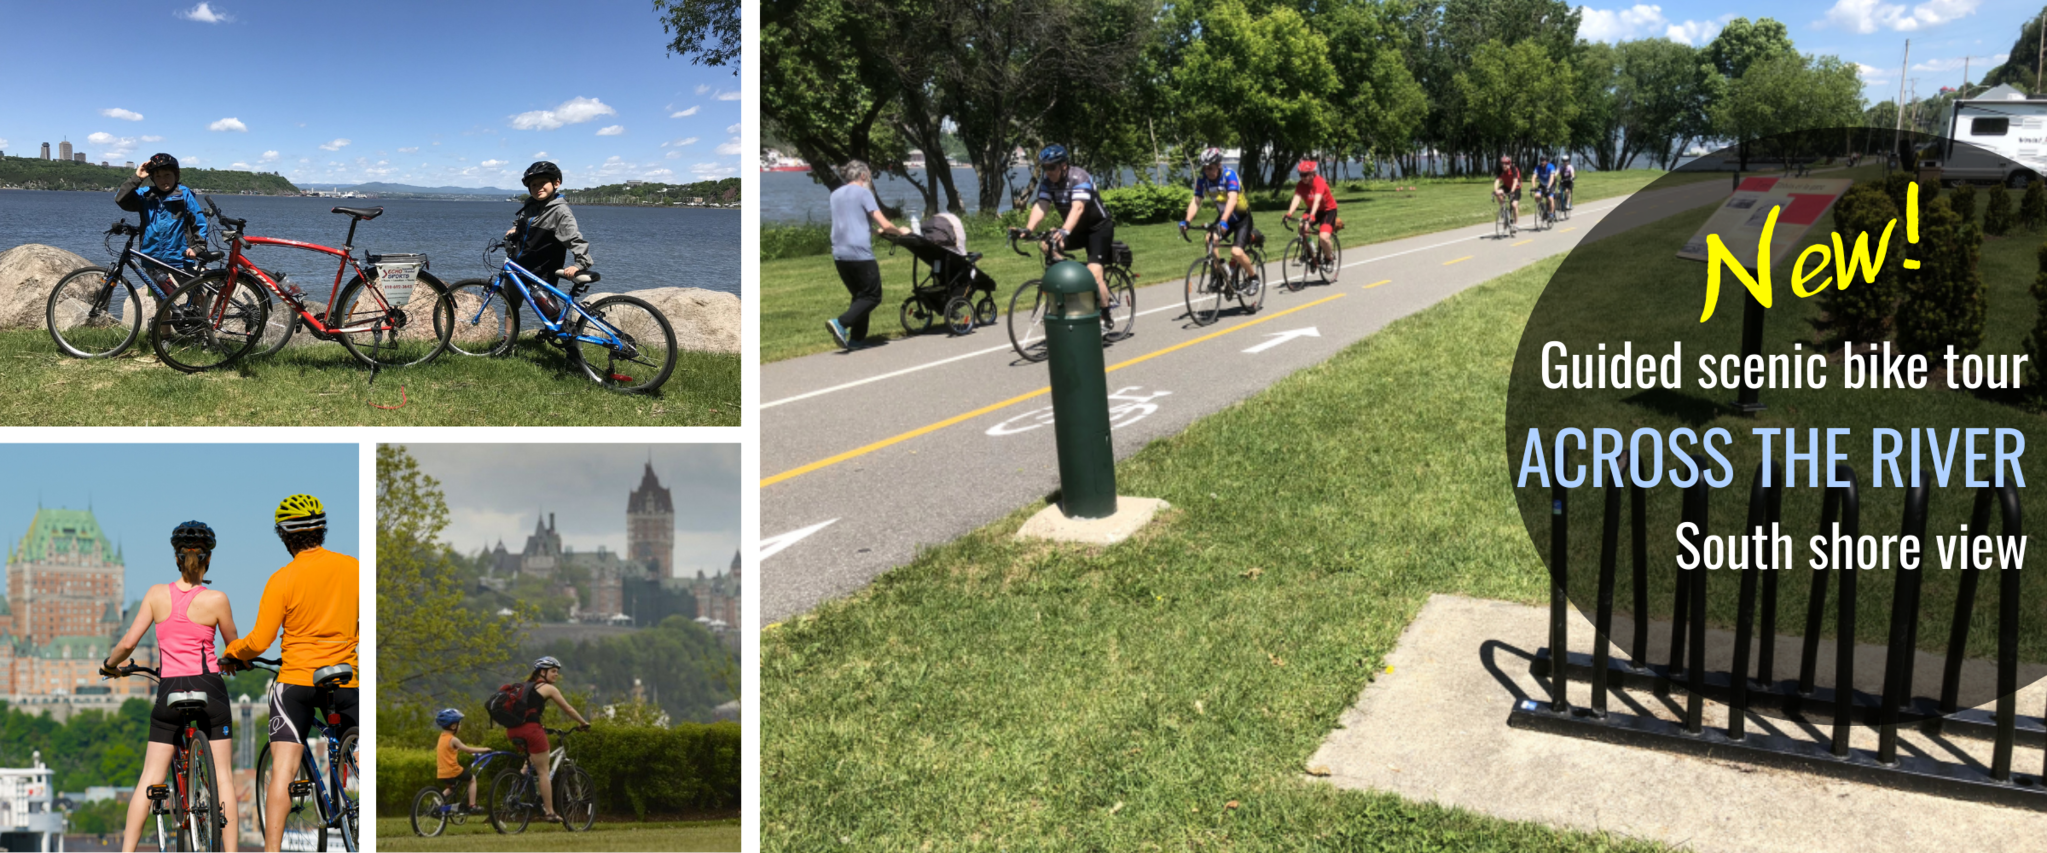 Scenic bike tour in Quebec city across the river